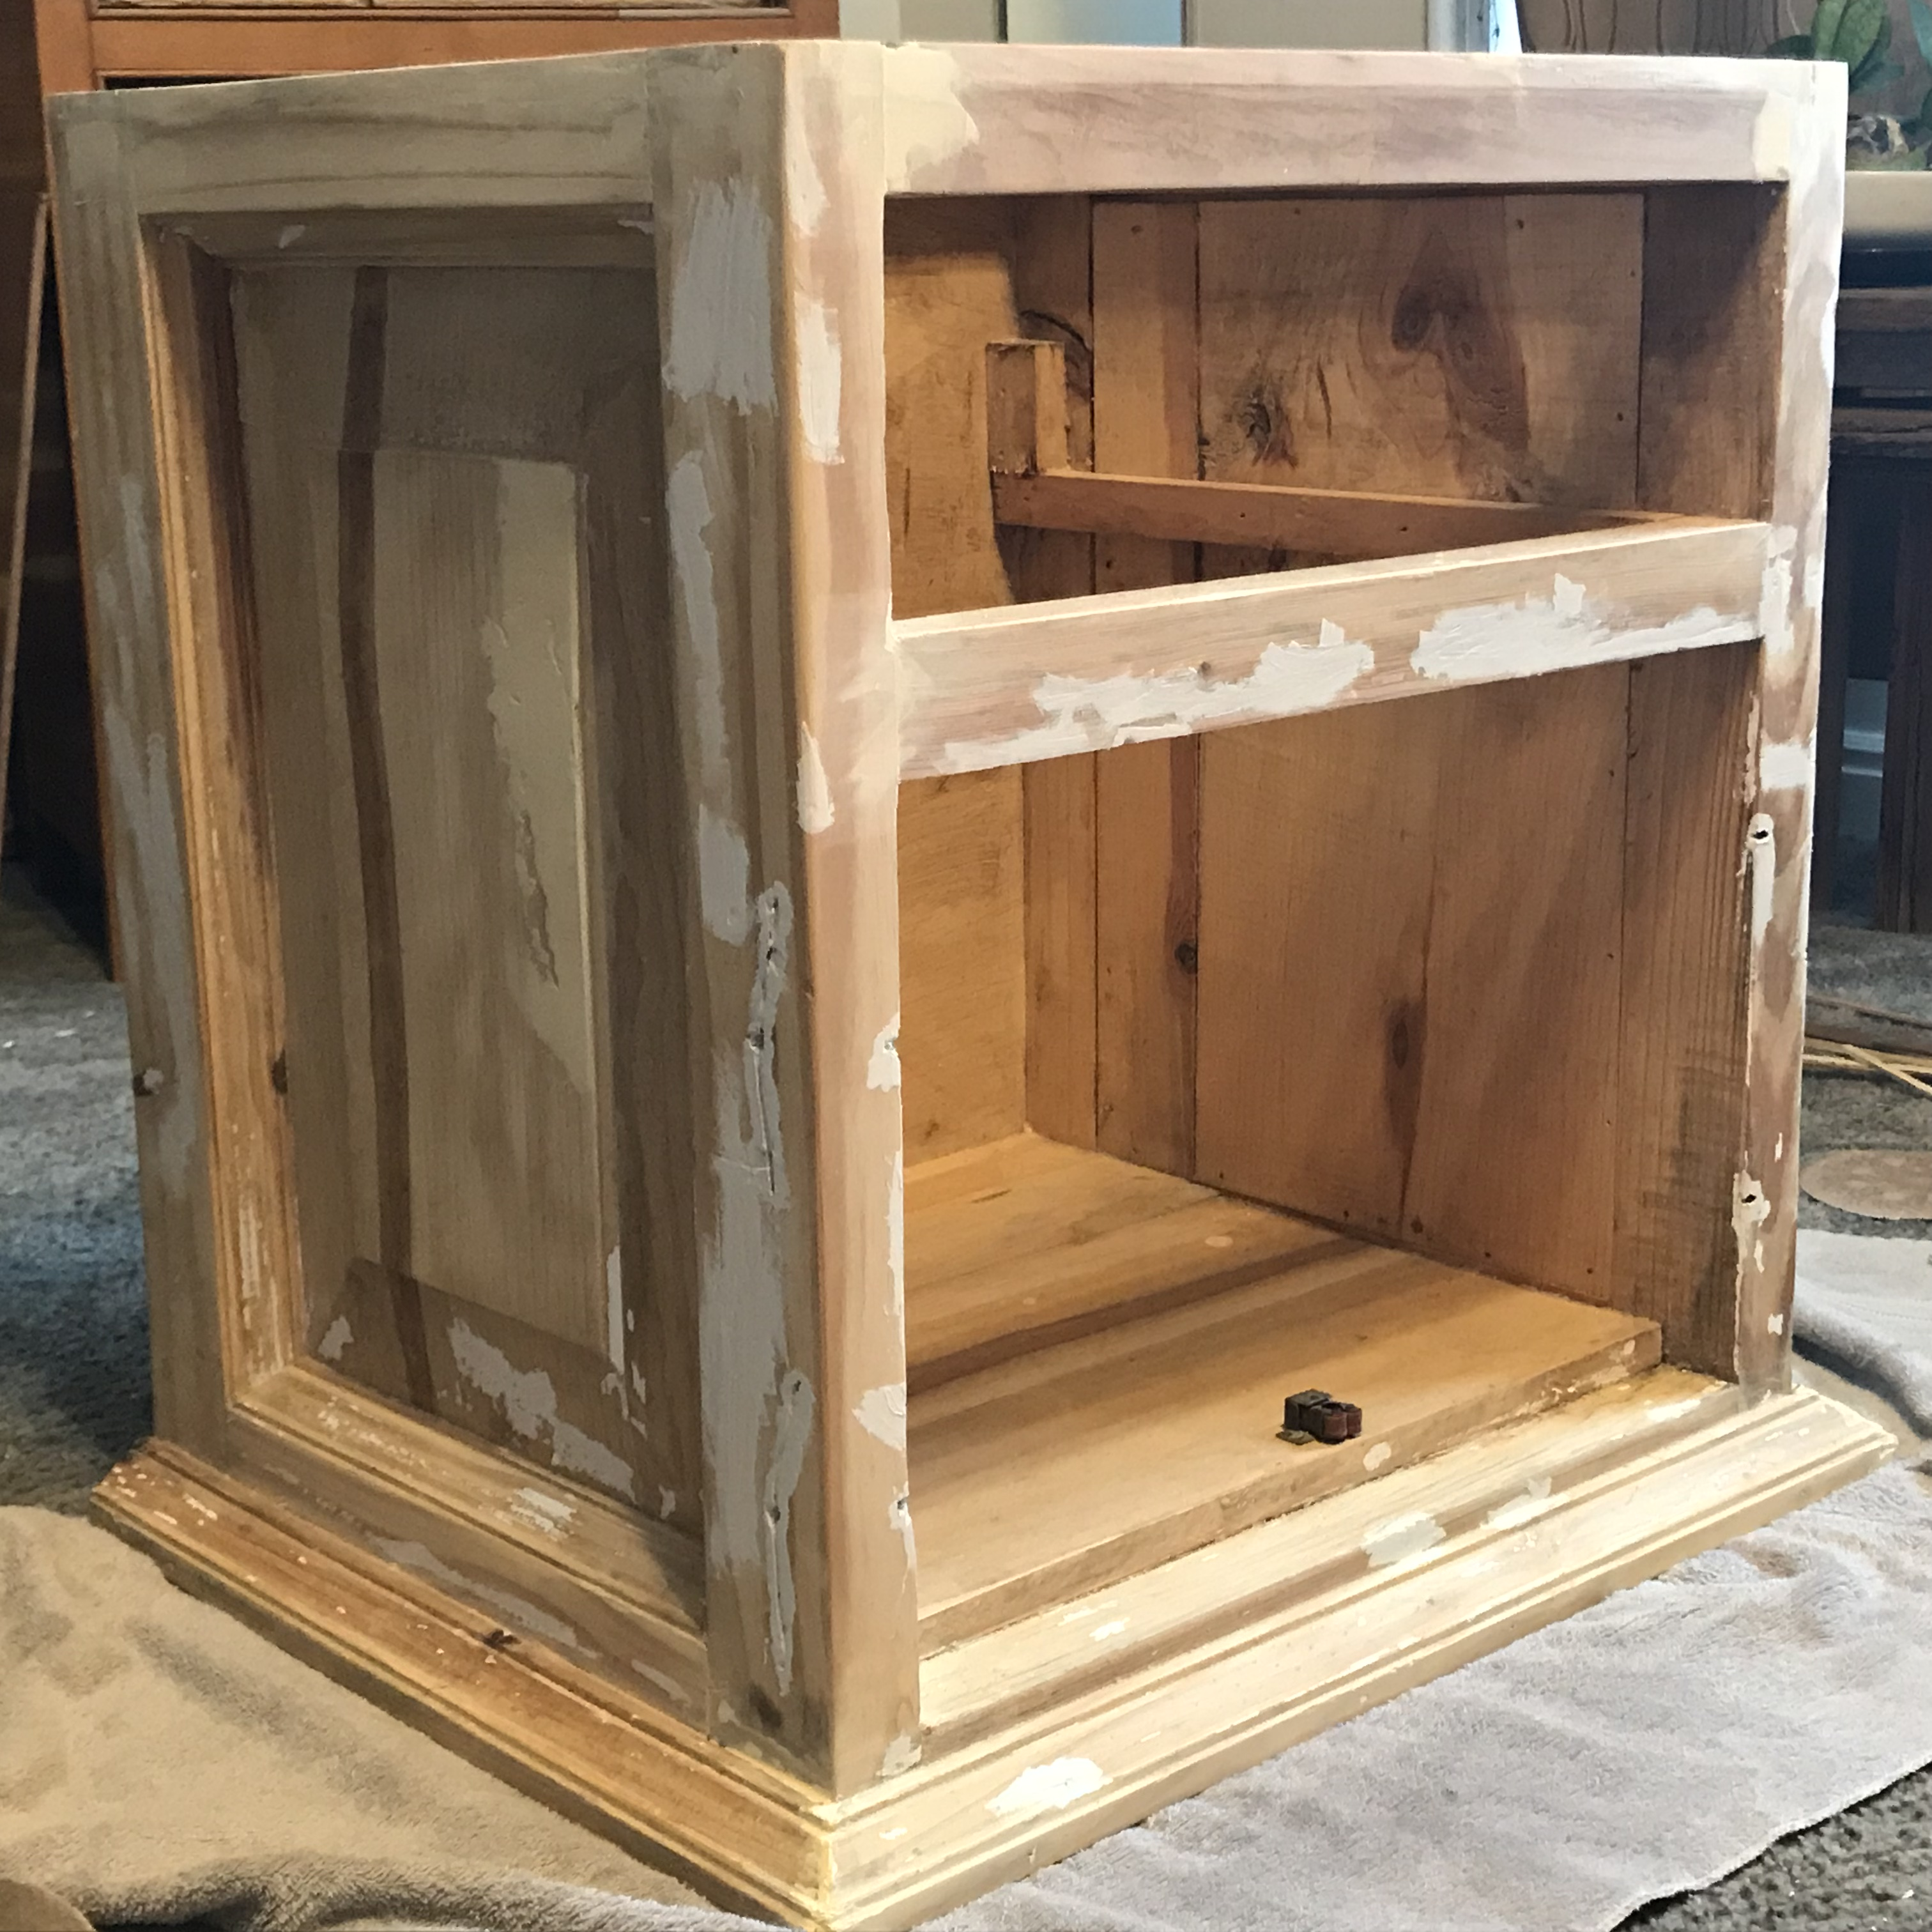 A raw wood cabinet with white paint scraped off with missing doors and drawer